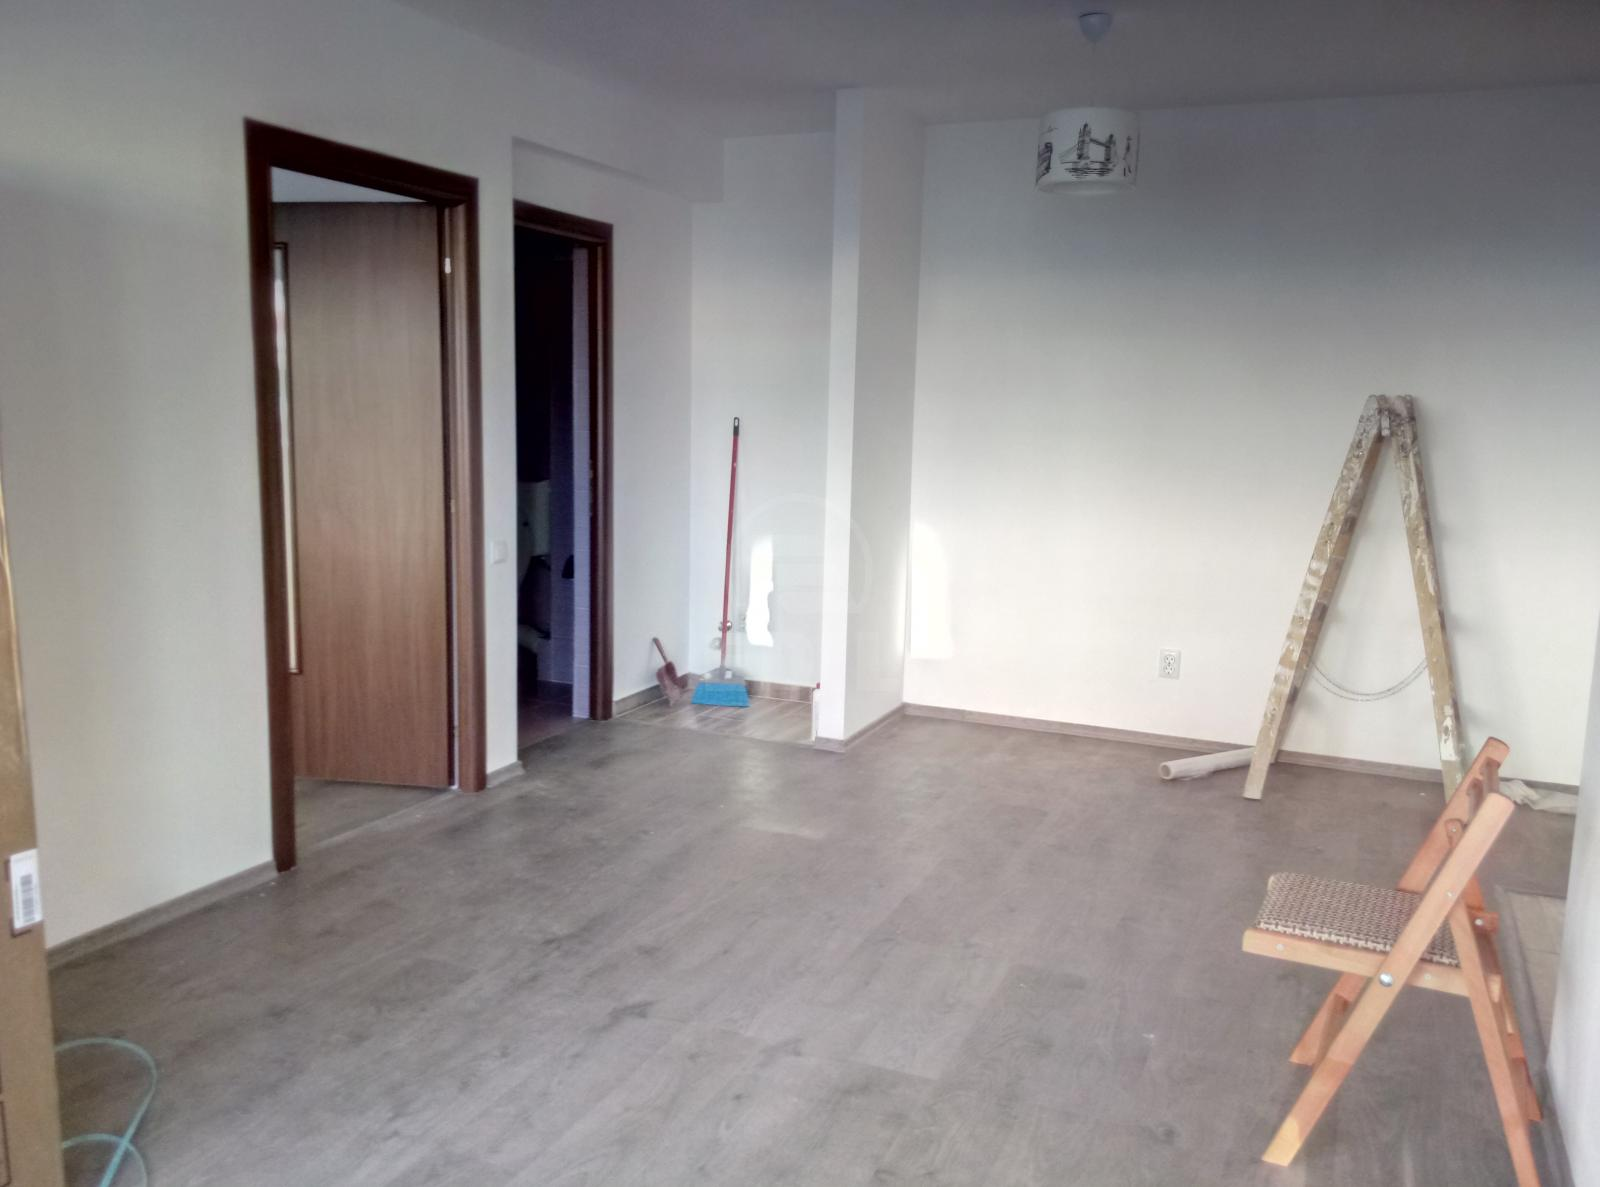 Commercial space for rent, SCCJ230822FLO-4